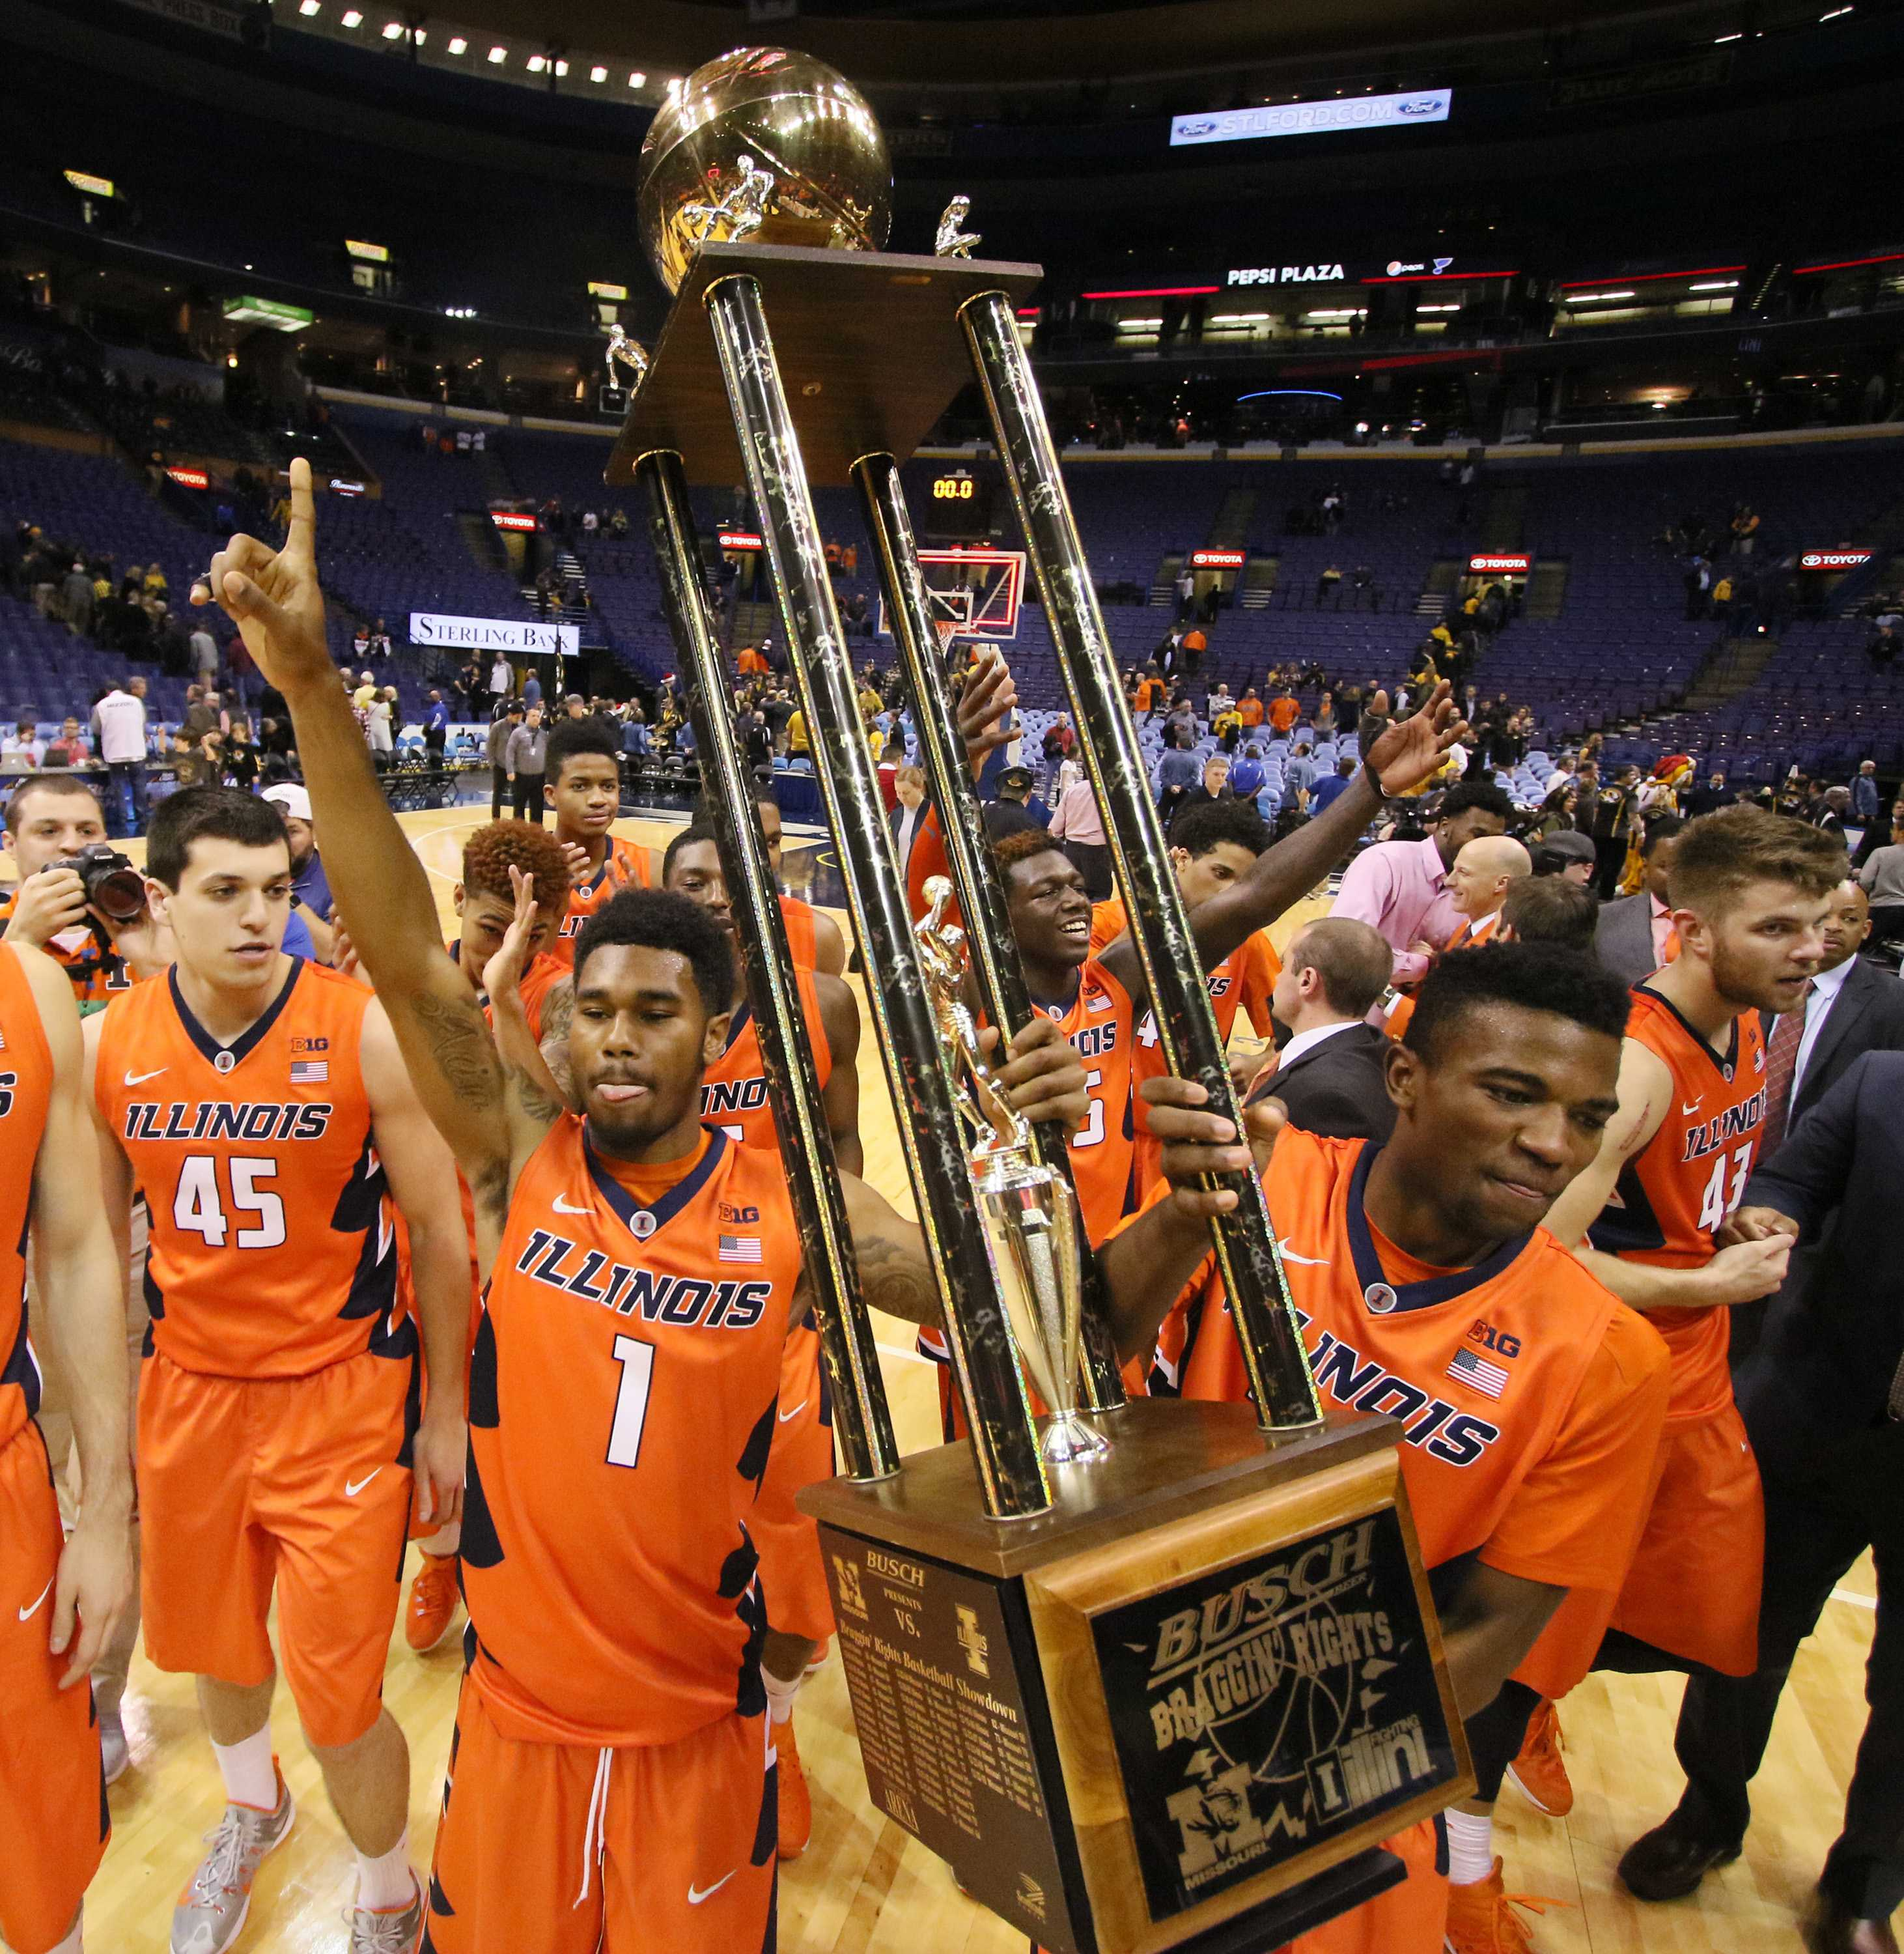 Illinois guards Jaylon Tate, left, and Aaron Jordan carry the Busch Braggin' Rights trophy, the spoils of a 69-63 win against Missouri on Wednesday, Dec. 23, 2015, at the Scottrade Center in St. Louis. Illinois won, 68-63. (Chris Lee/St. Louis Post-Dispatch/TNS)